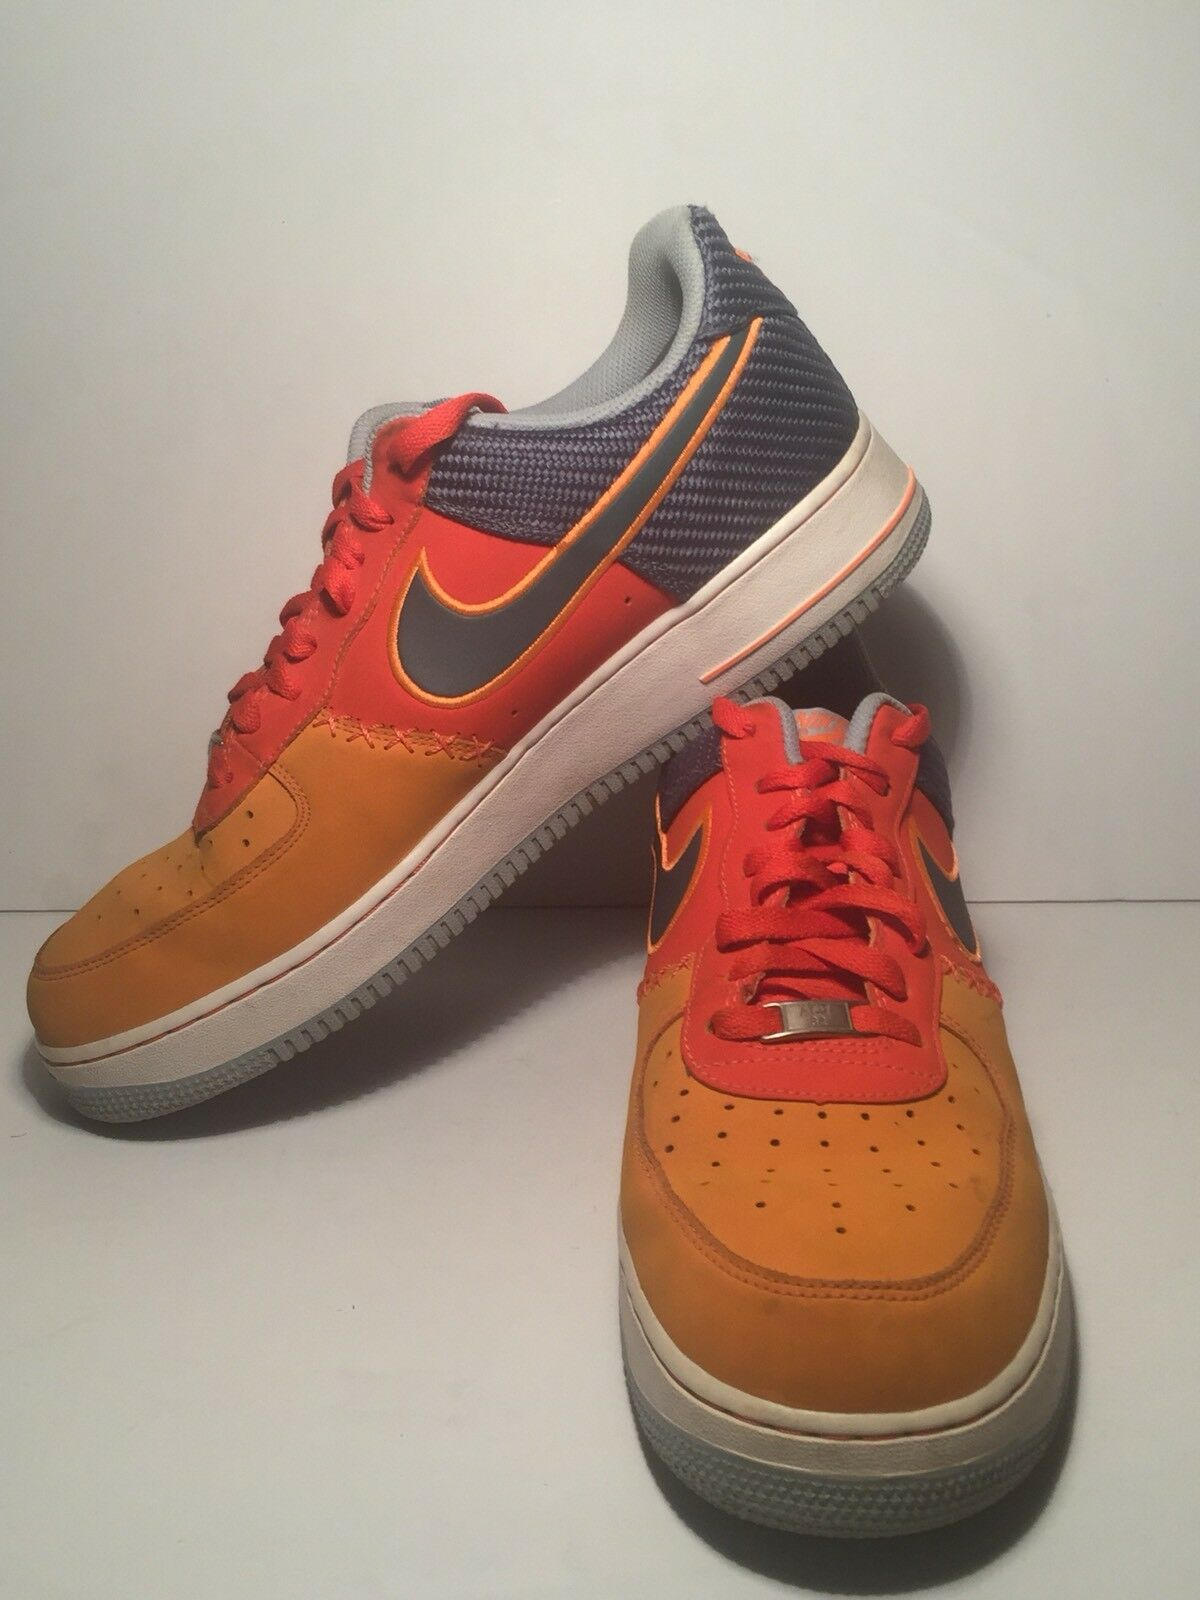 Nike air force 1 af-1 82 orange basso scarpe da basket uomo numero 13